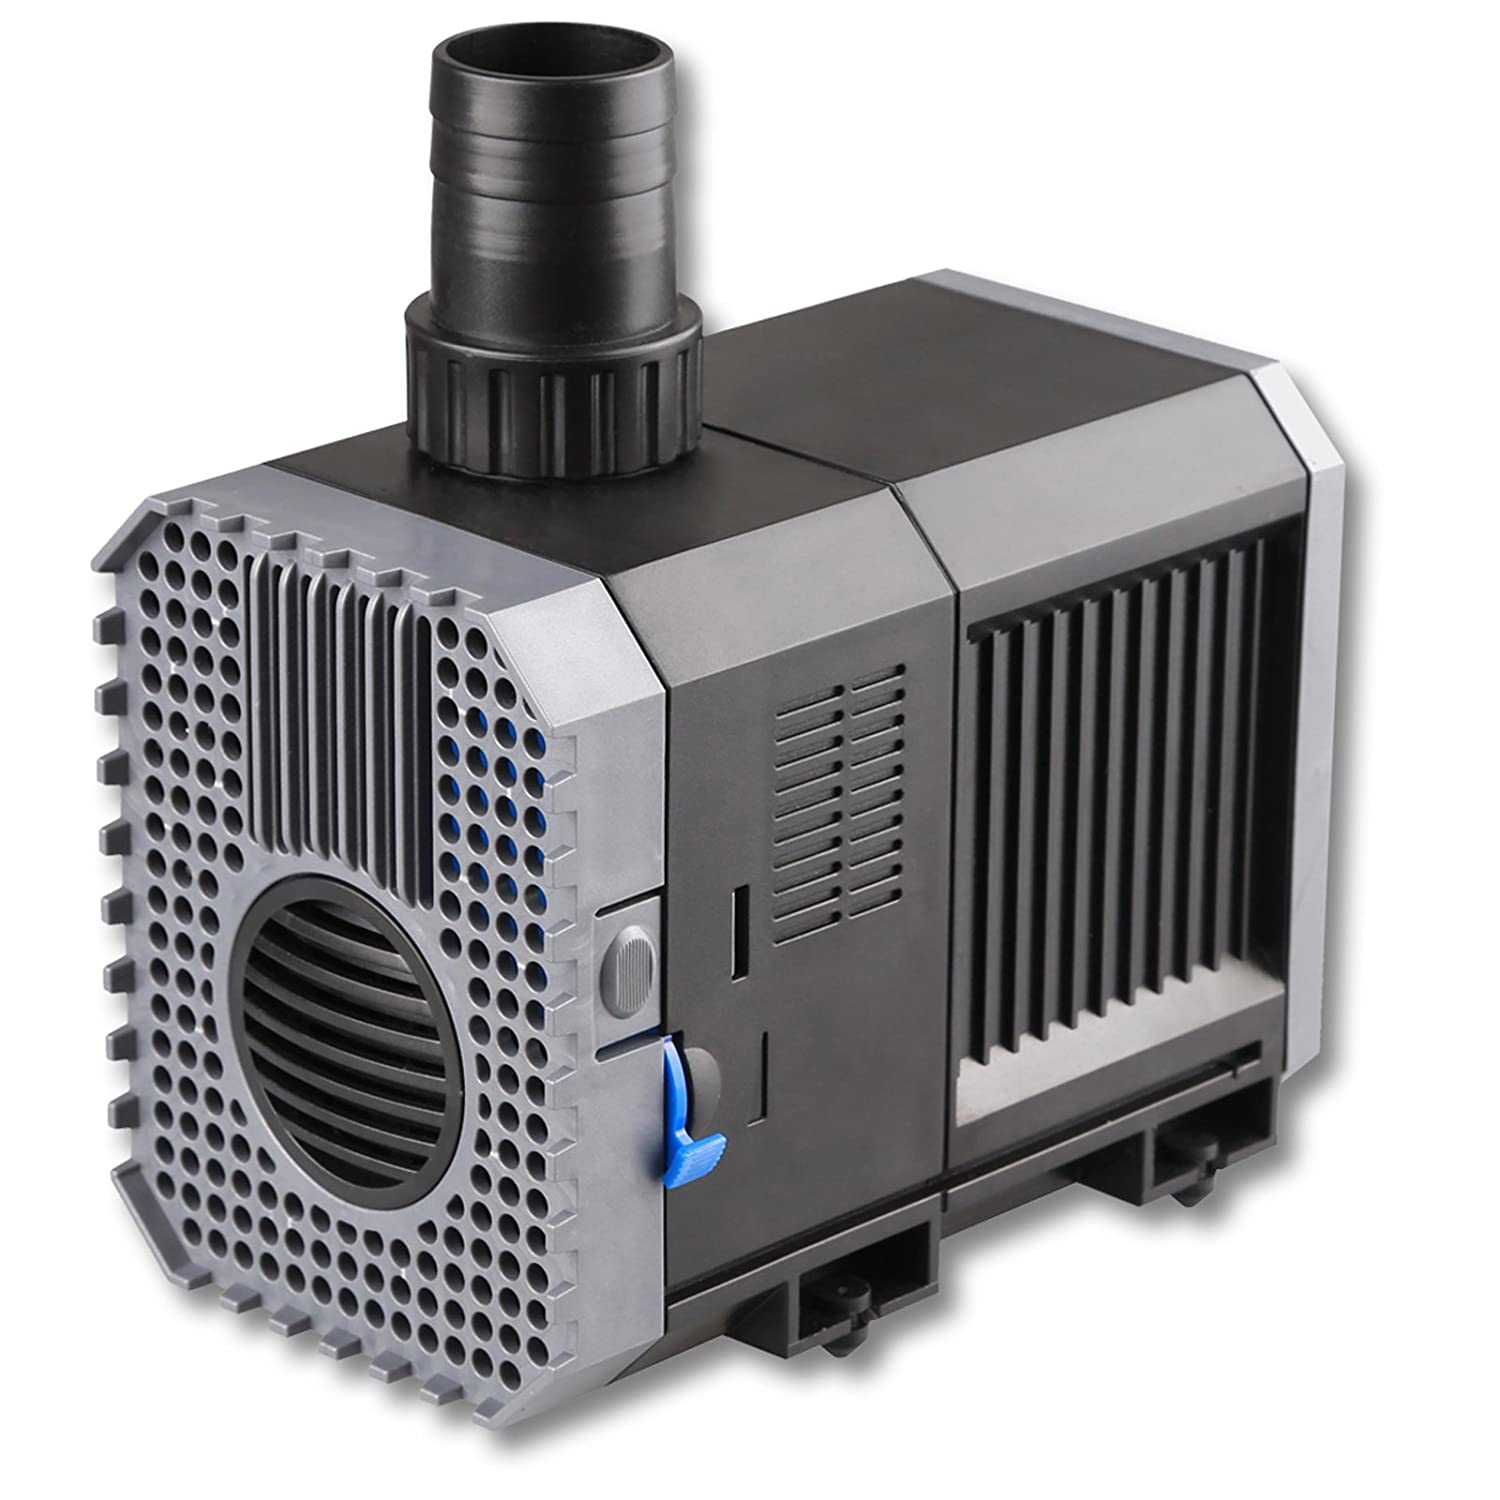 CHJ-6000 ECO Pond Pump Is SunSun 6000L/H with Only 100 W